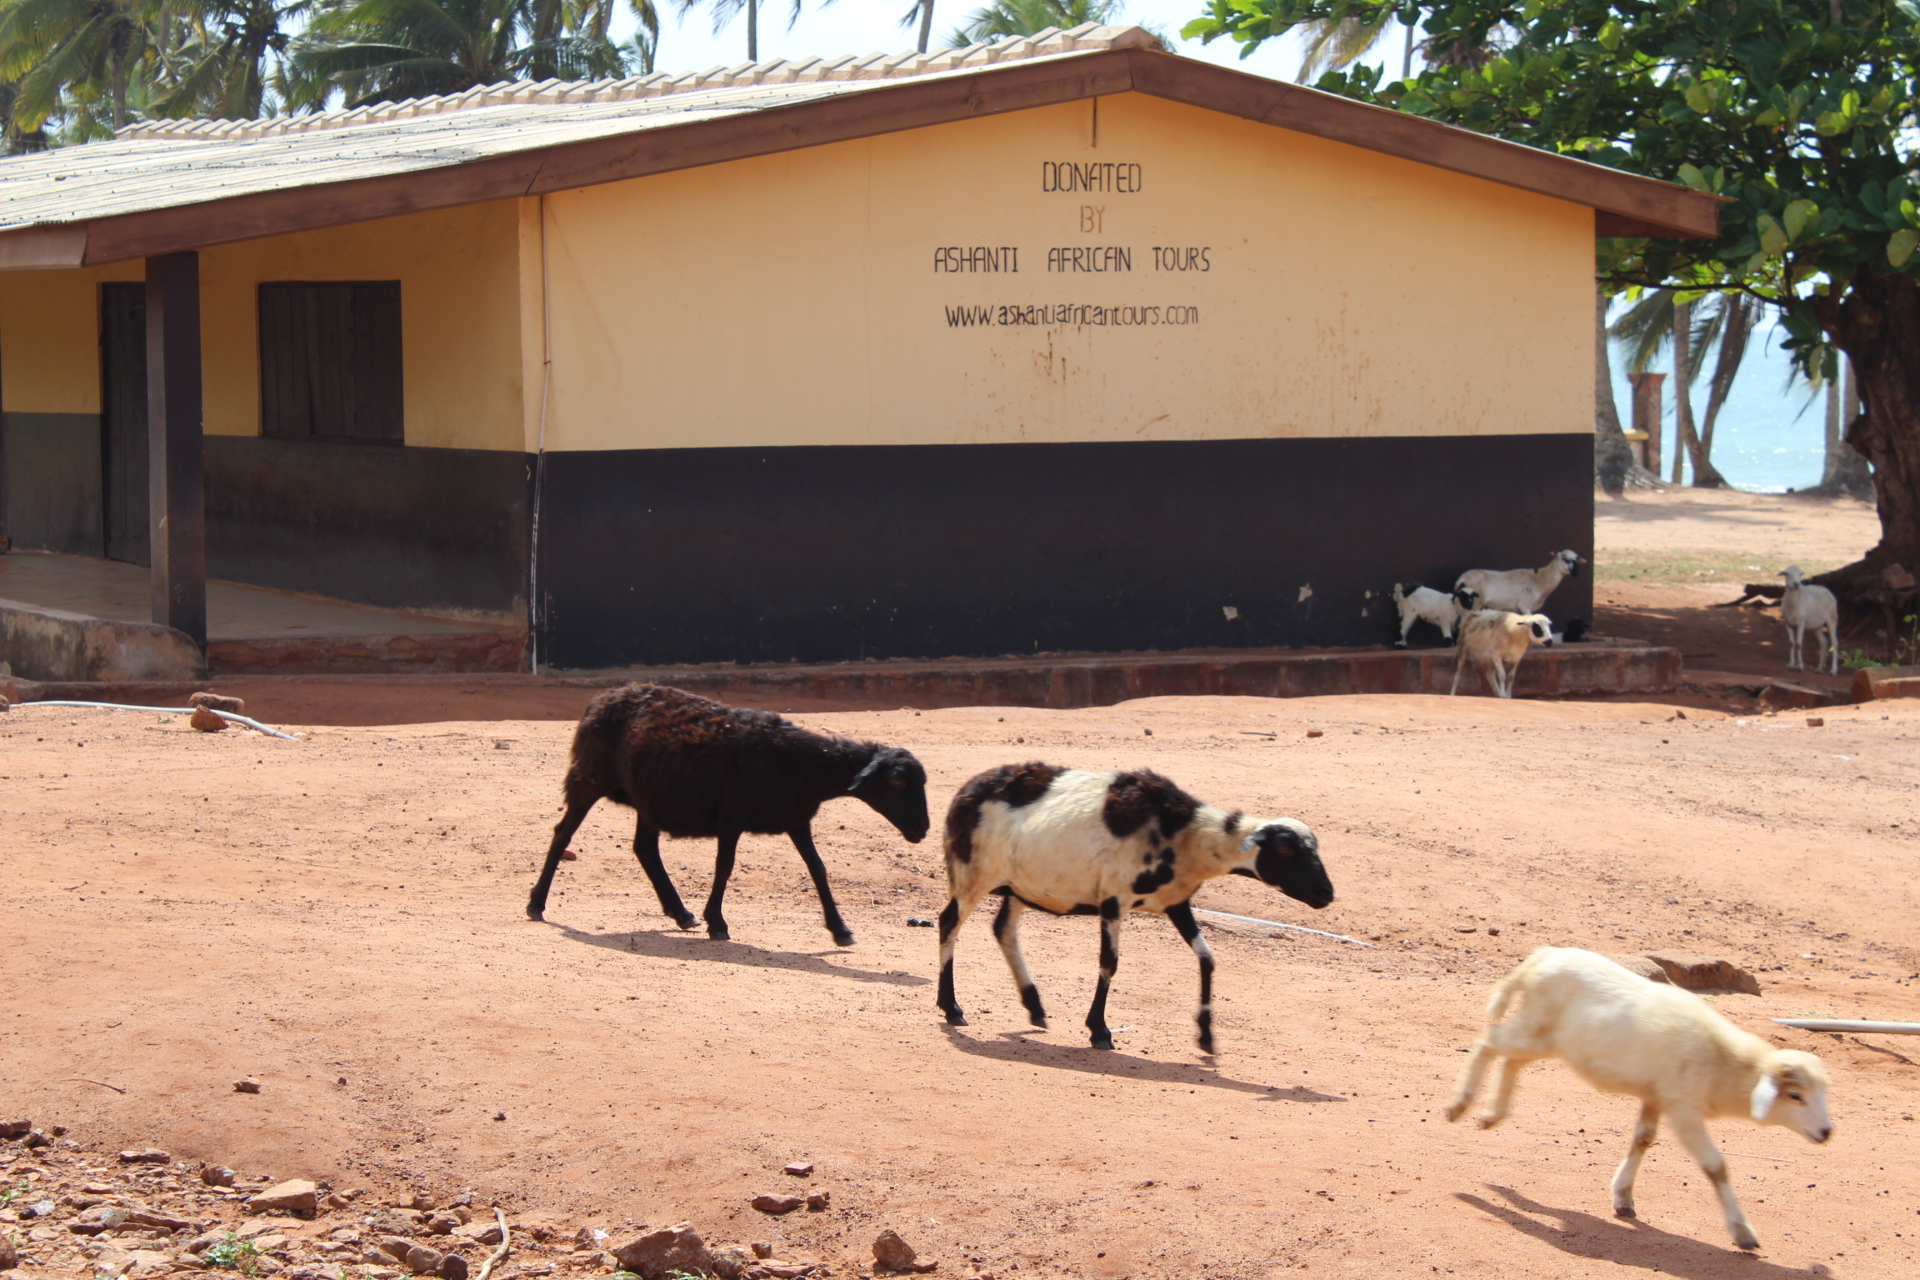 Visiting one of the schools in a village near Elmina that Ashanti African Tours built. Wild goats are a common site in Ghana.